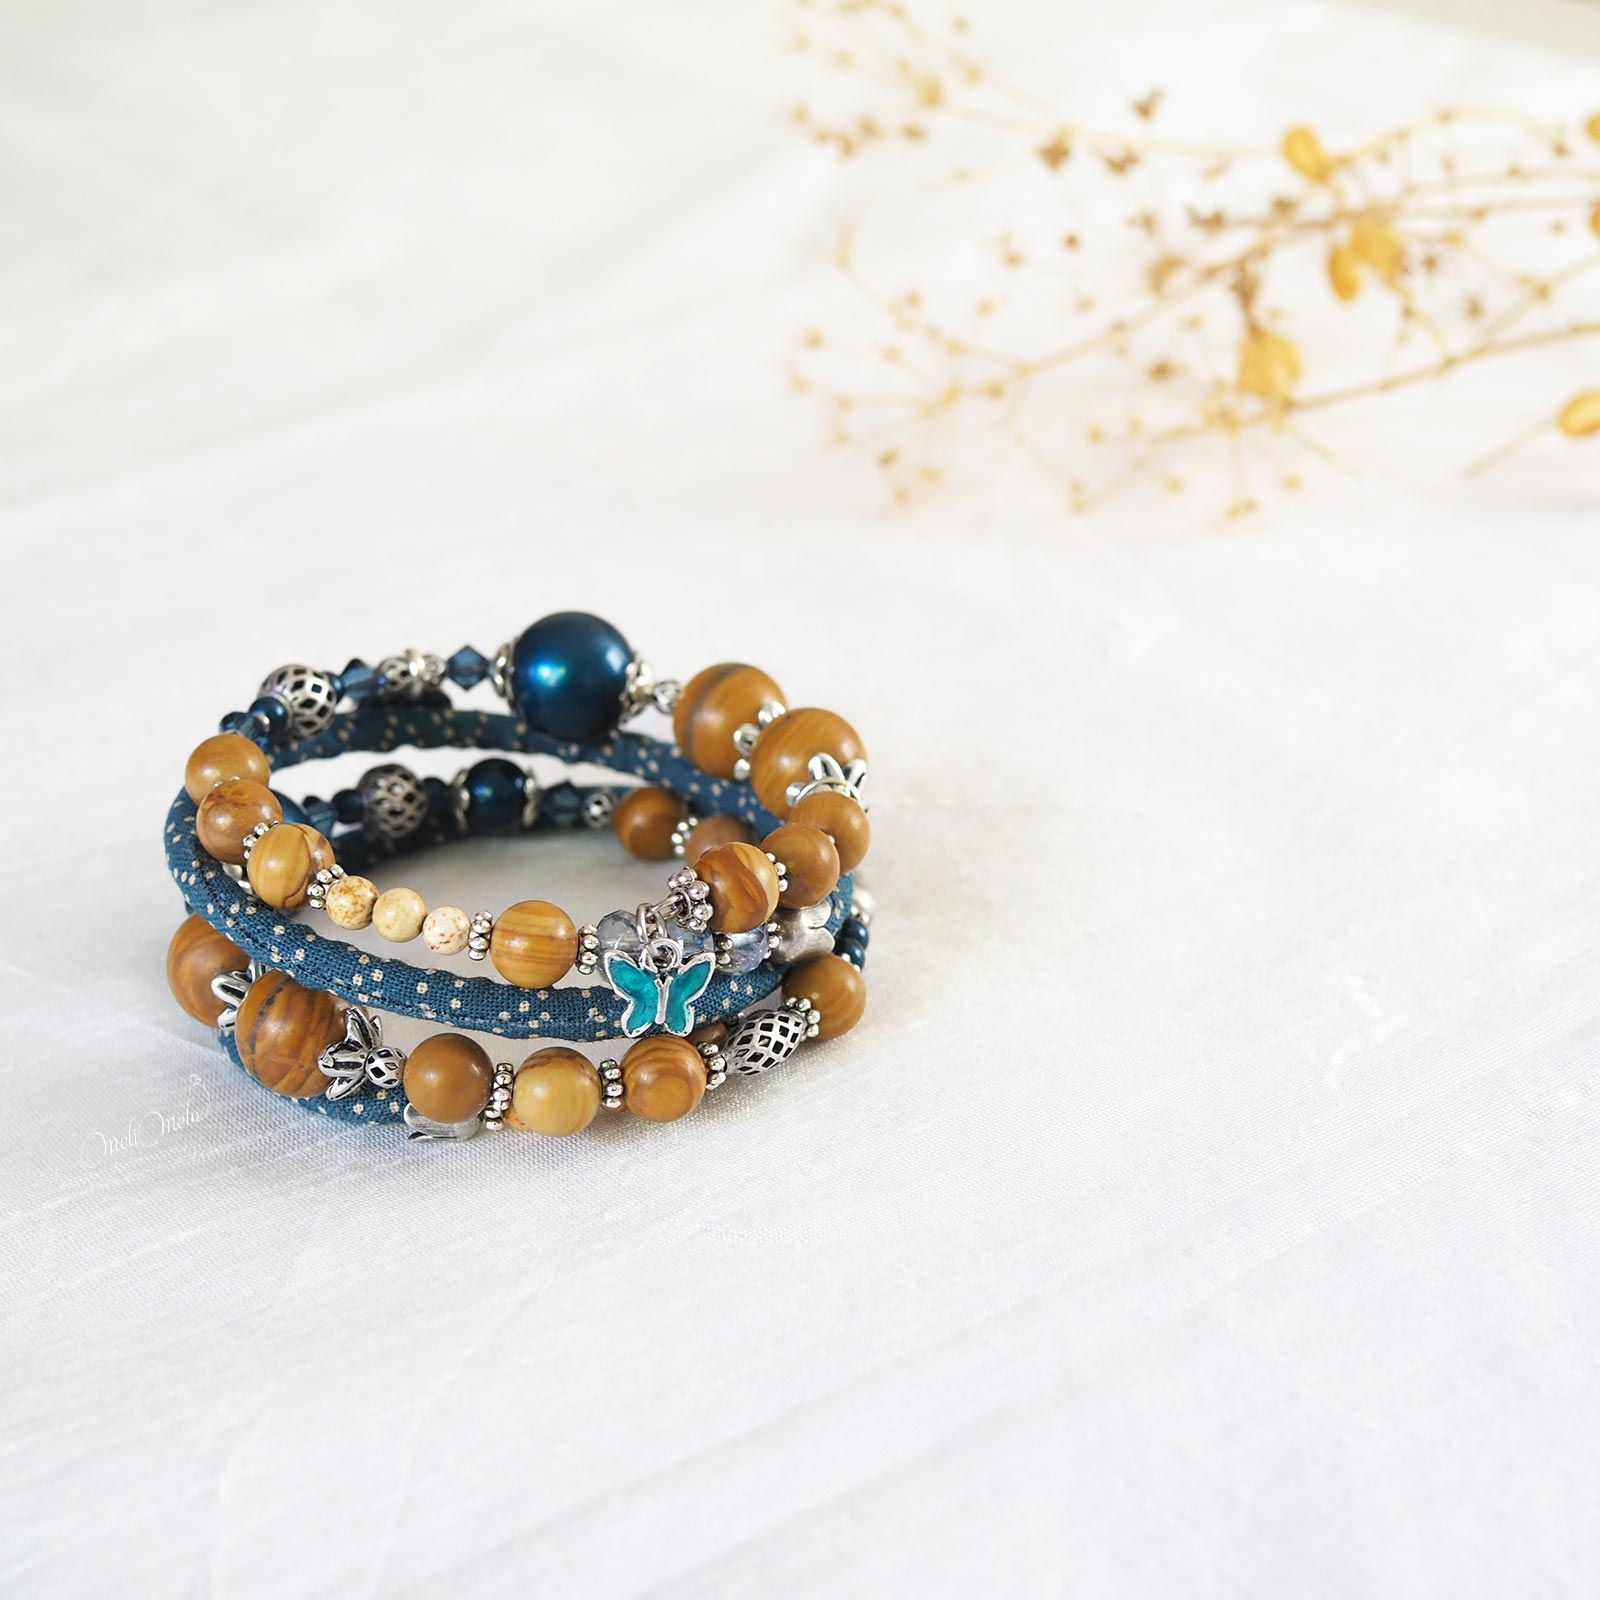 Bracelet Seikaiha Blue gemmes Jaspe perles nacrées teal papillon Collection Japon laboutiquedemelimelo